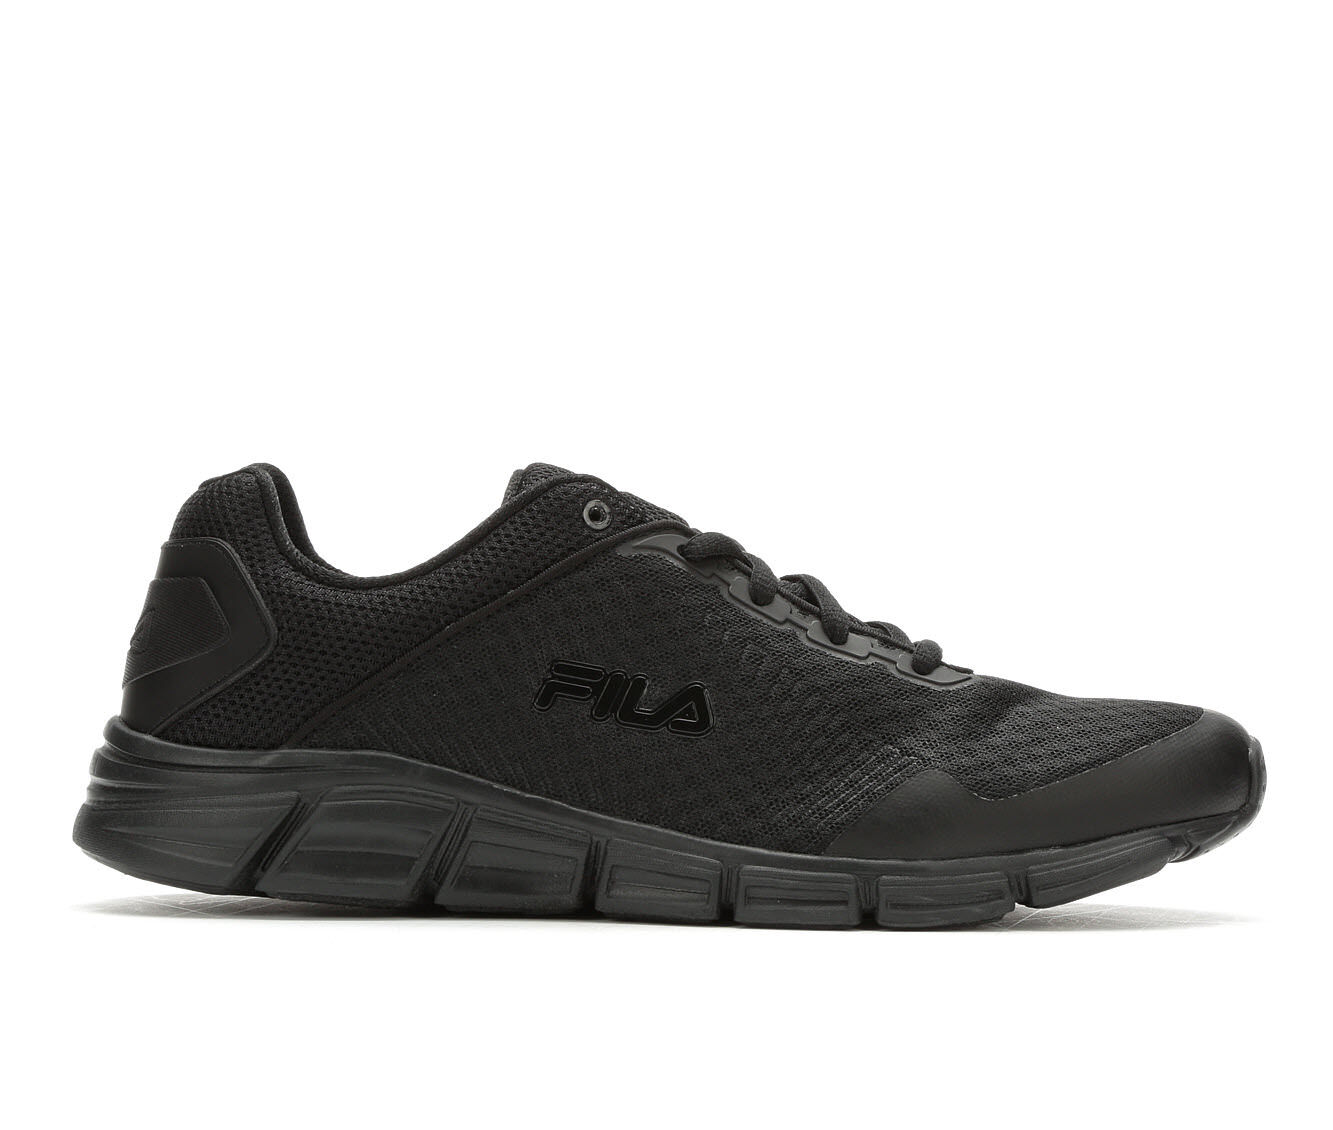 Men's Athletics, Sneakers, and Tennis Shoes for Men